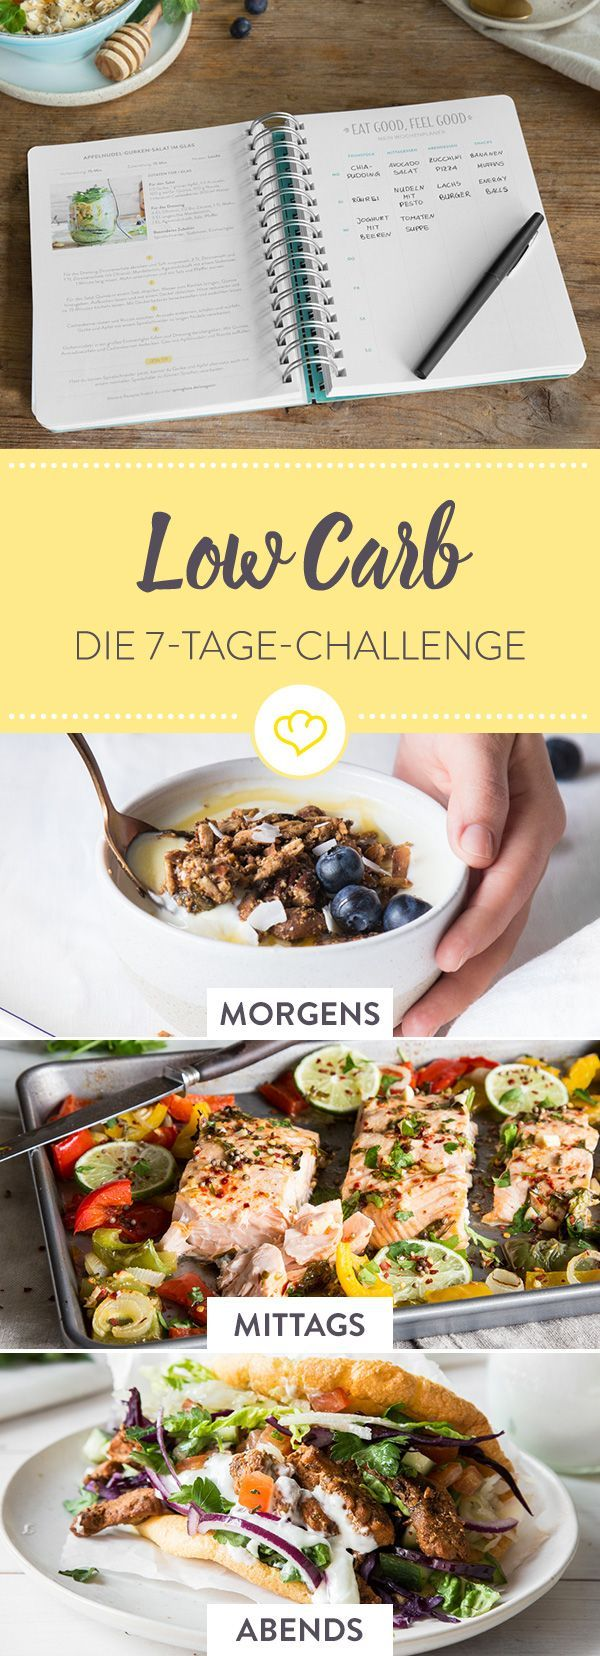 7 tage low carb challenge kohlenhydrate einfach reduzieren low carb plan kohlenhydrate und. Black Bedroom Furniture Sets. Home Design Ideas